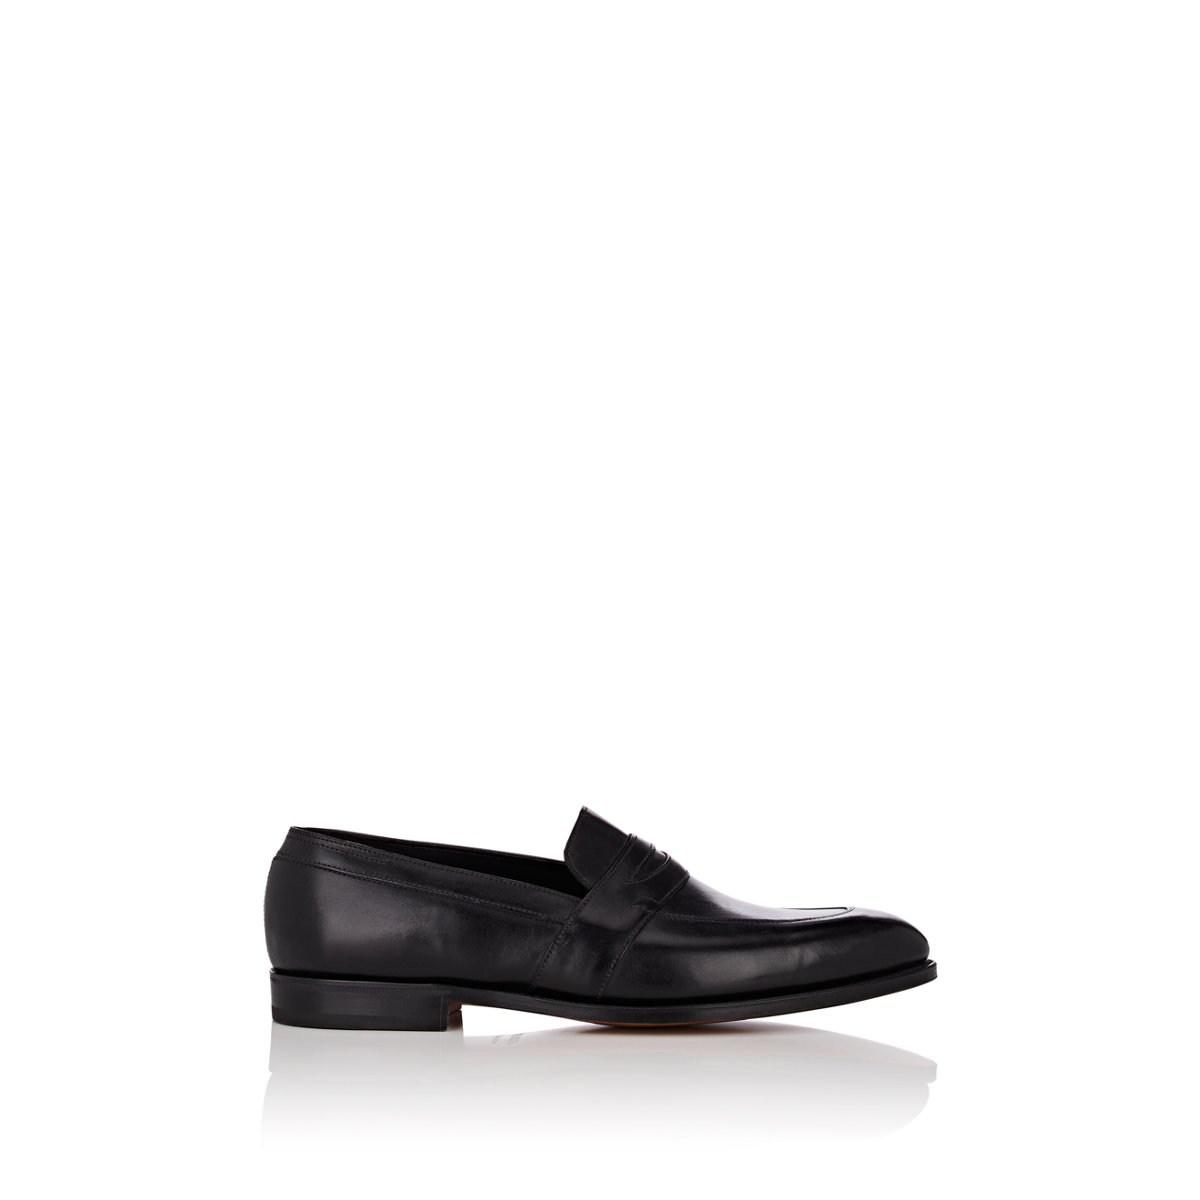 6a1be61a1da Lyst - John Lobb Adley Calfskin Penny Loafers in Black for Men